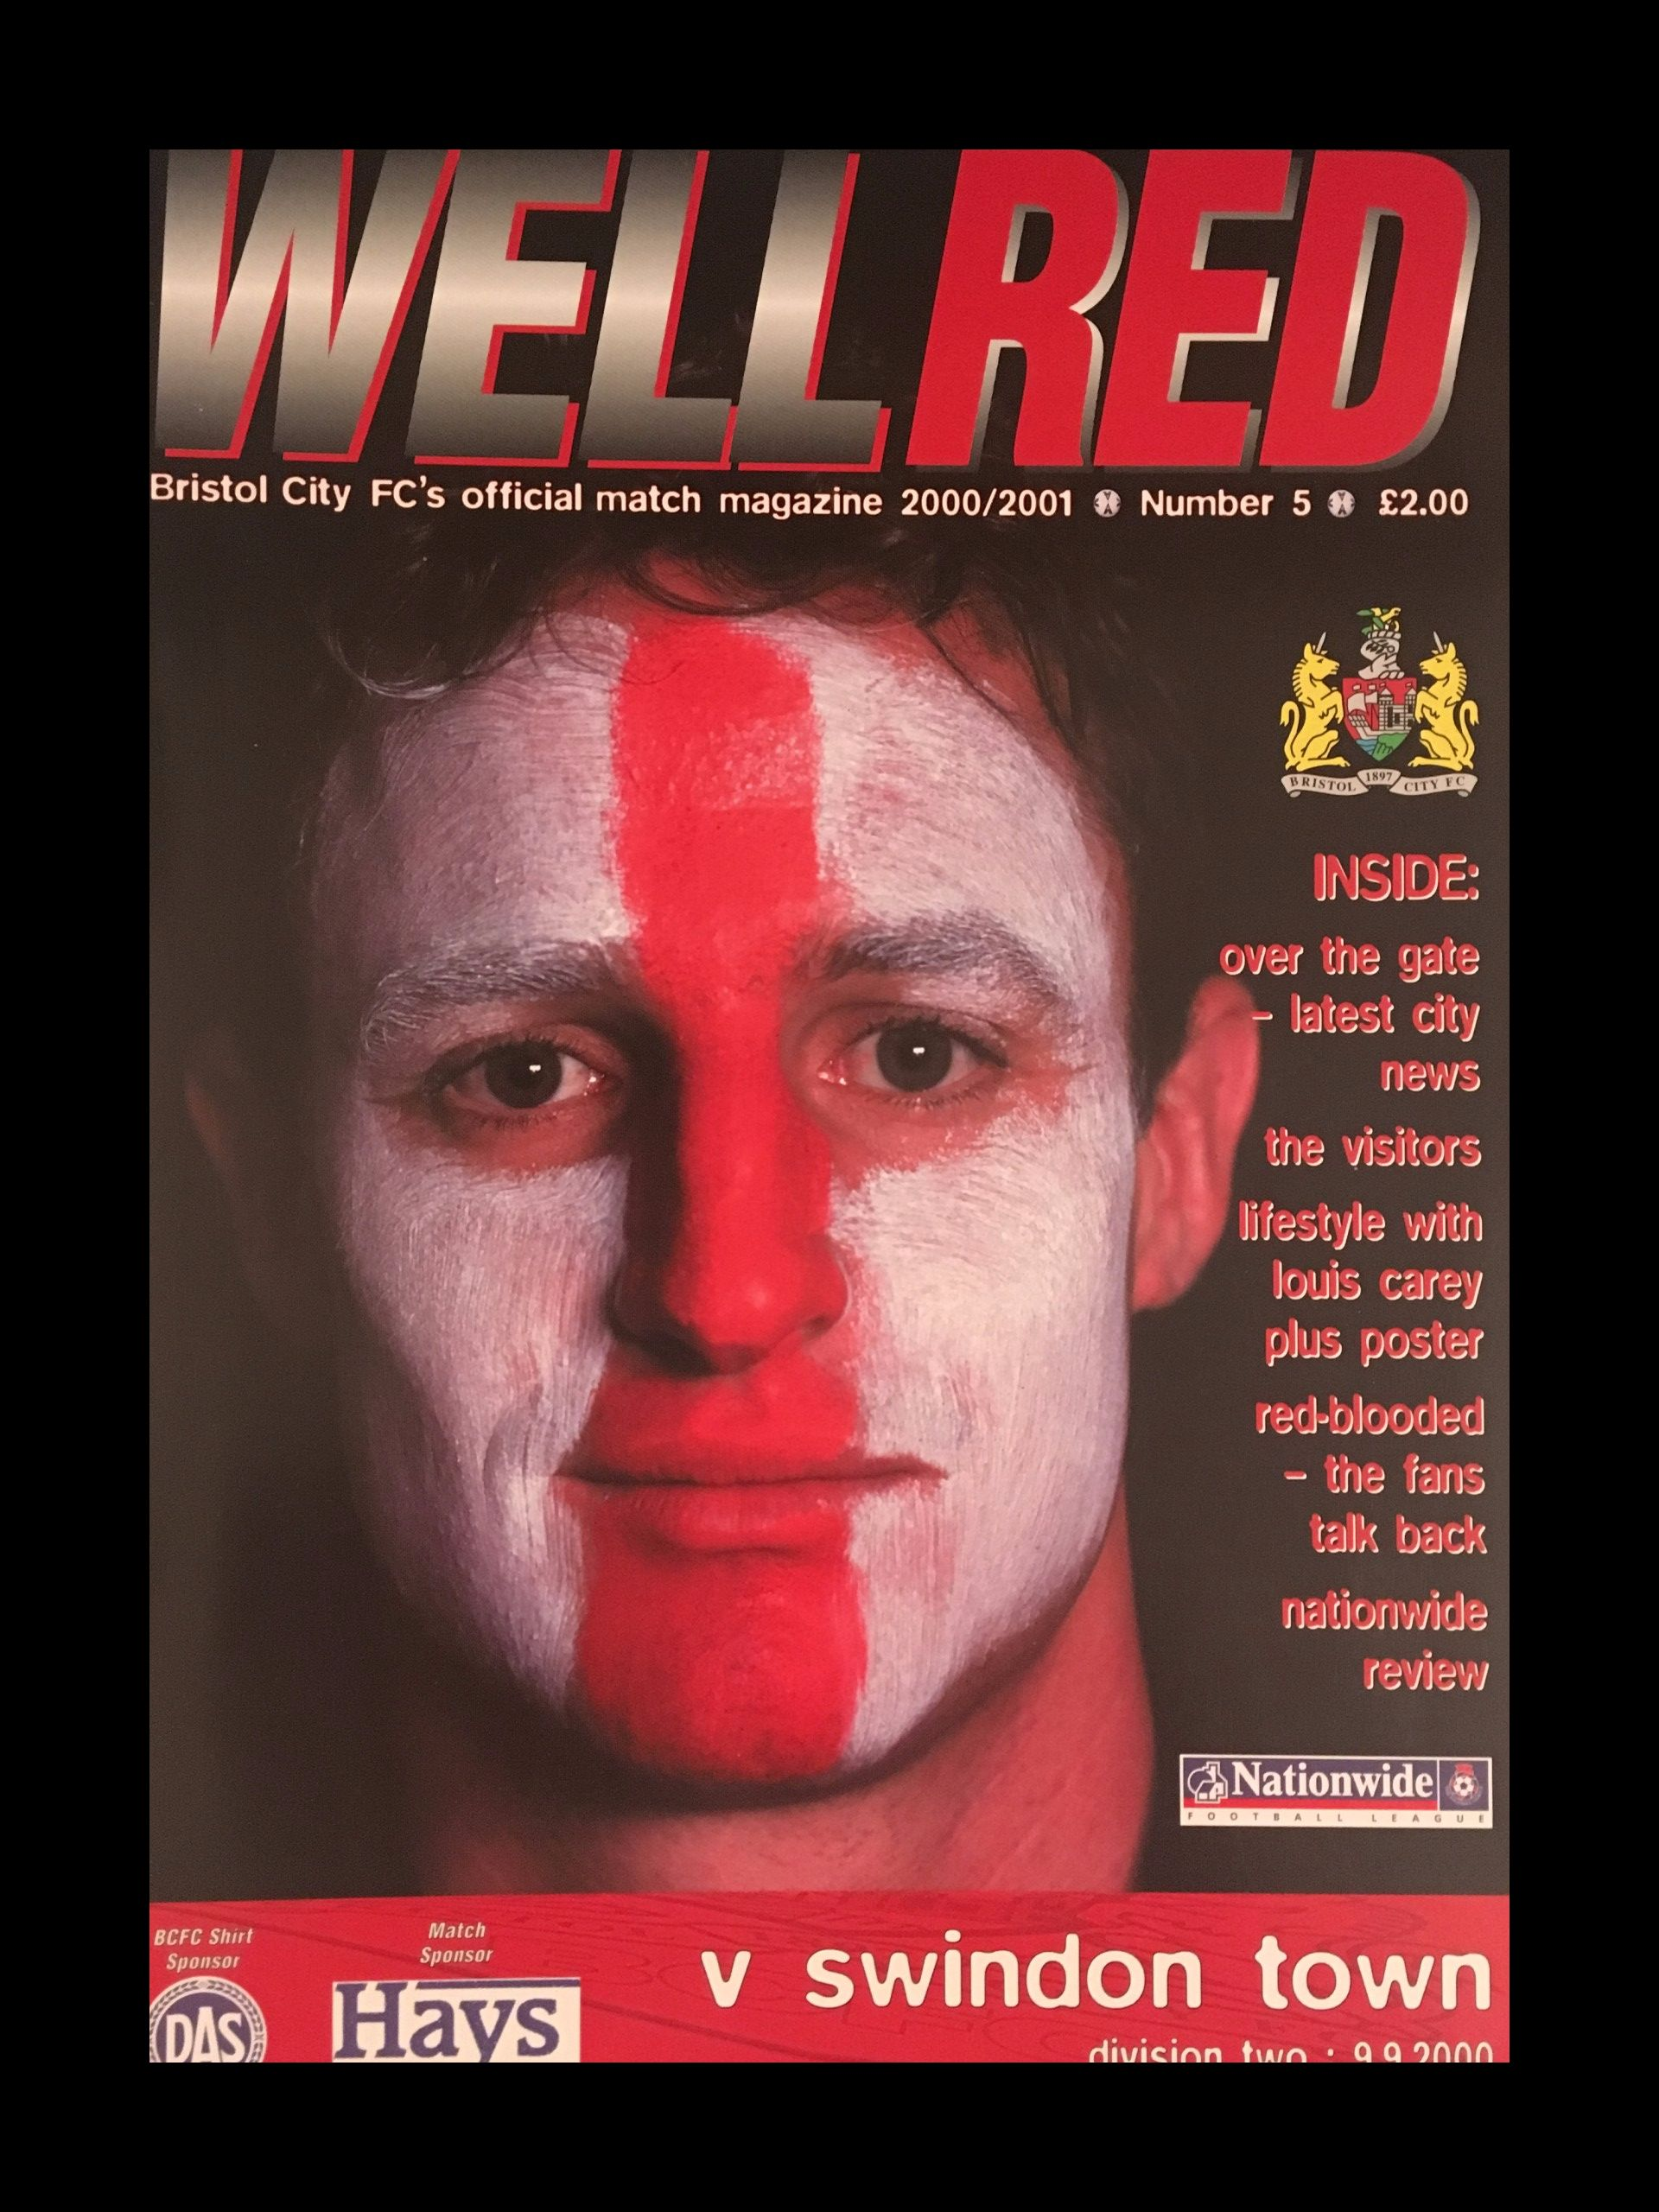 Bristol City v Swindon Town 09-09-2000 Programme